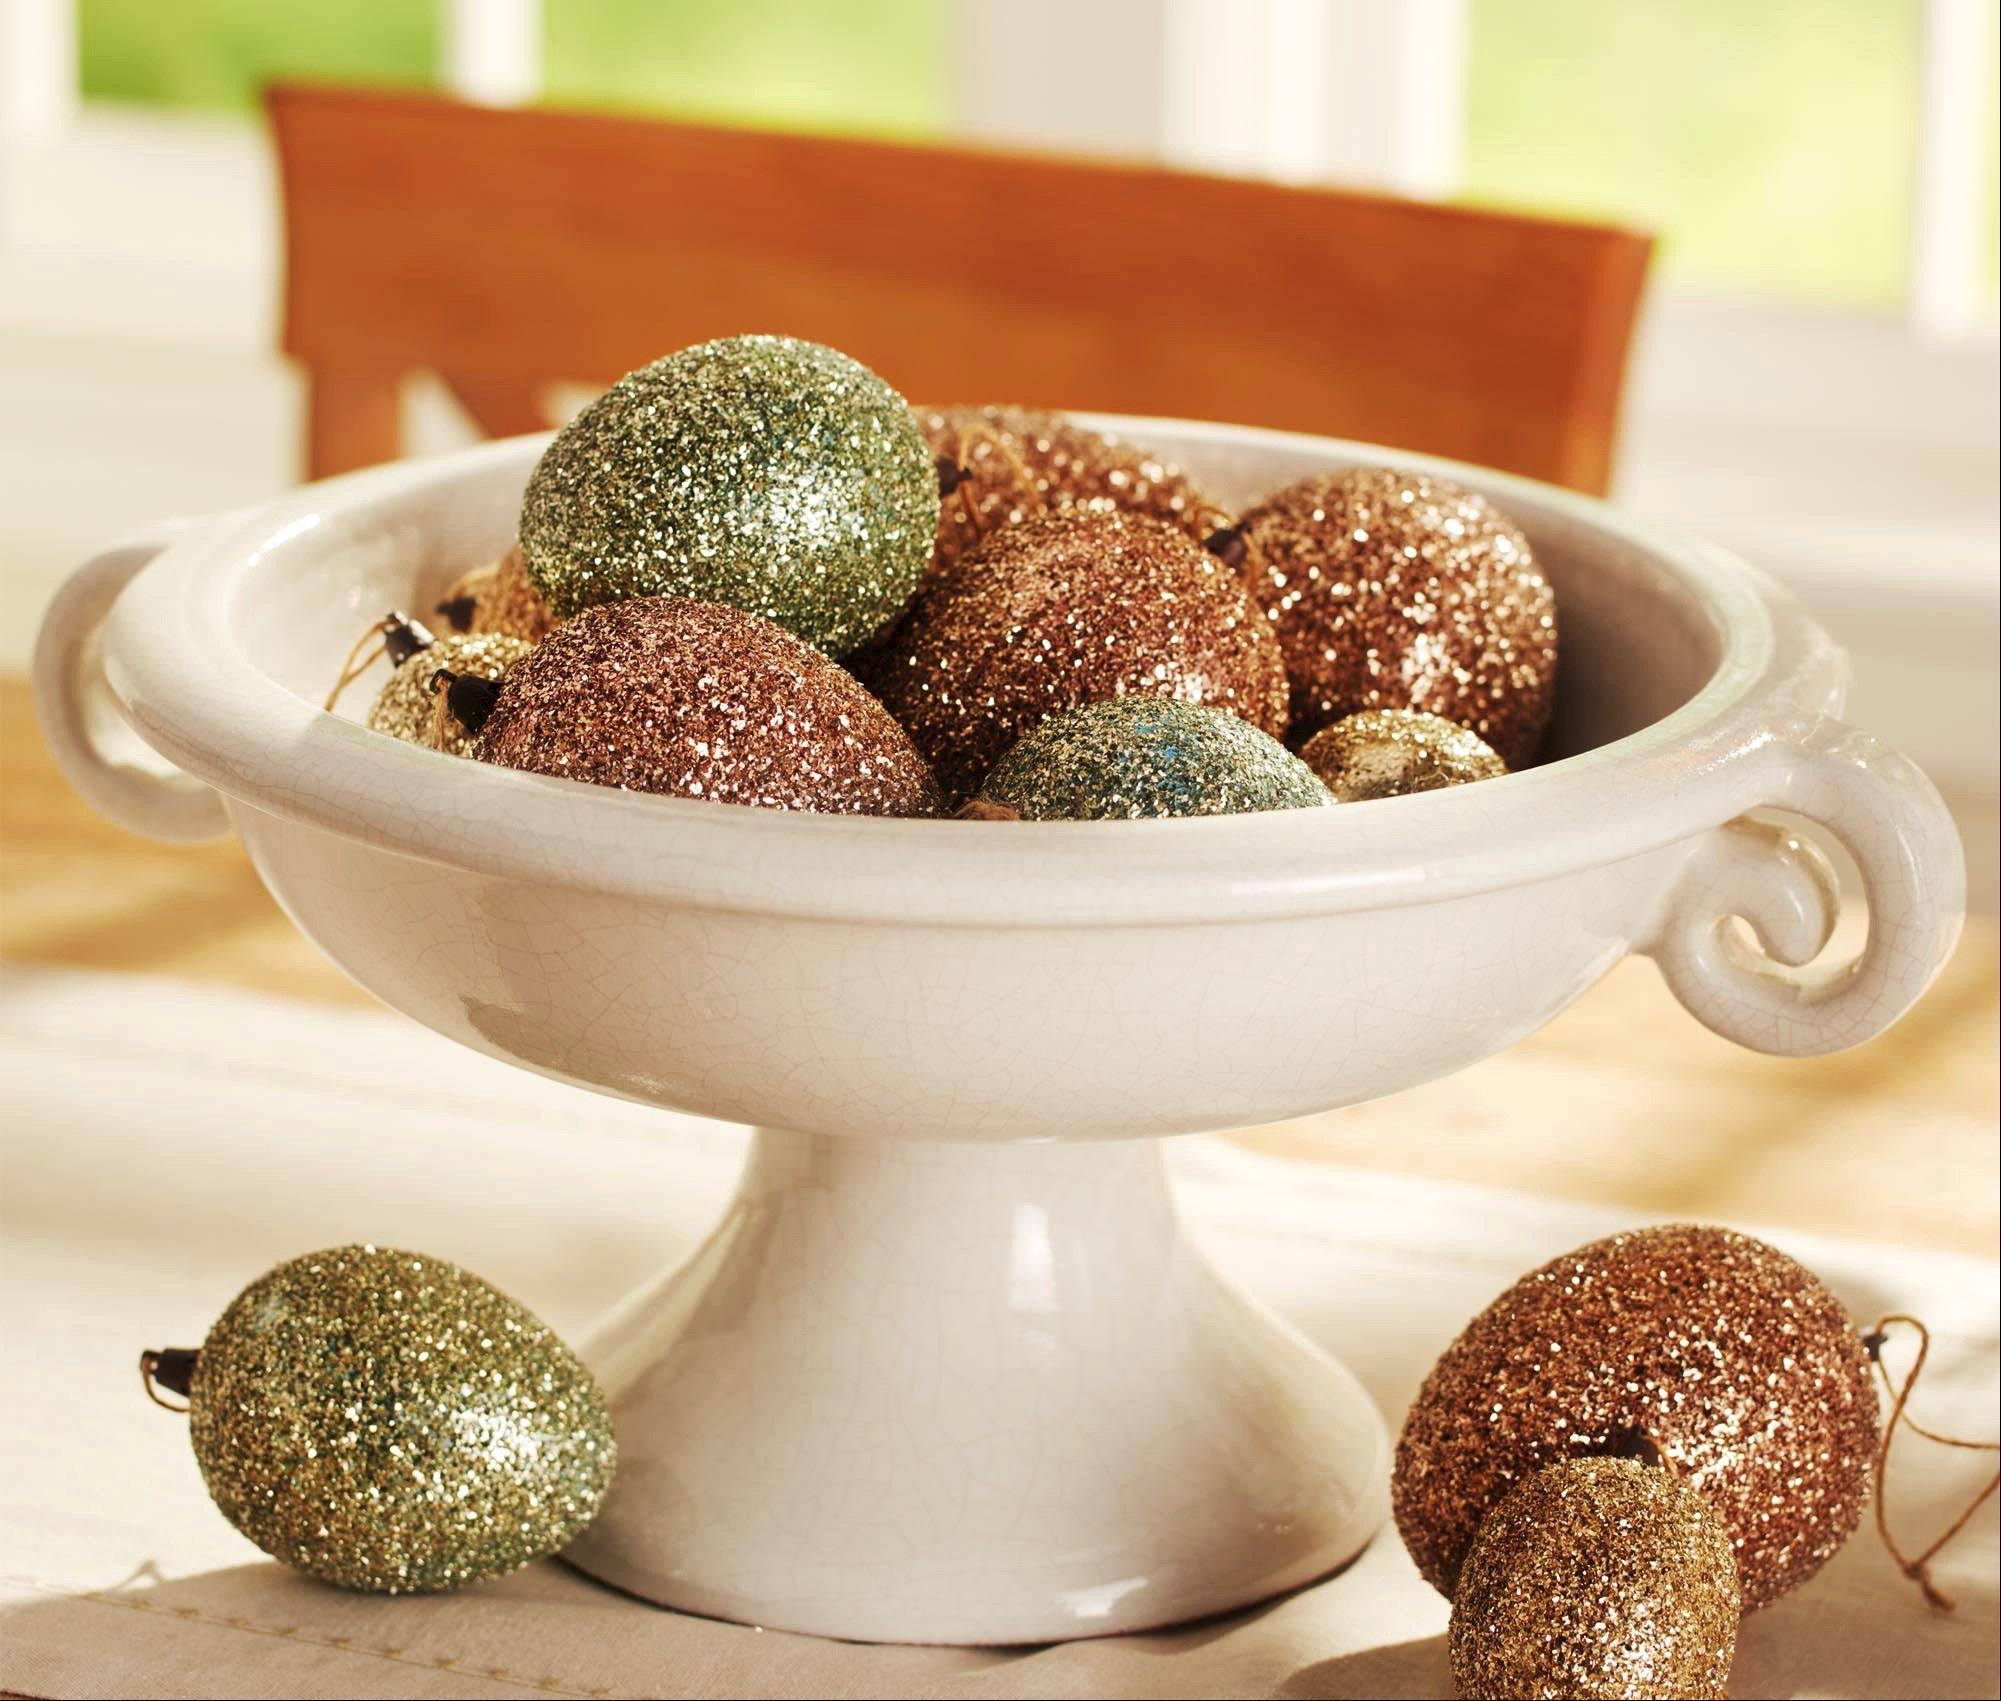 Glitter covered eggs from Pottery Barn bring some sophisticated glamour to the Easter table.